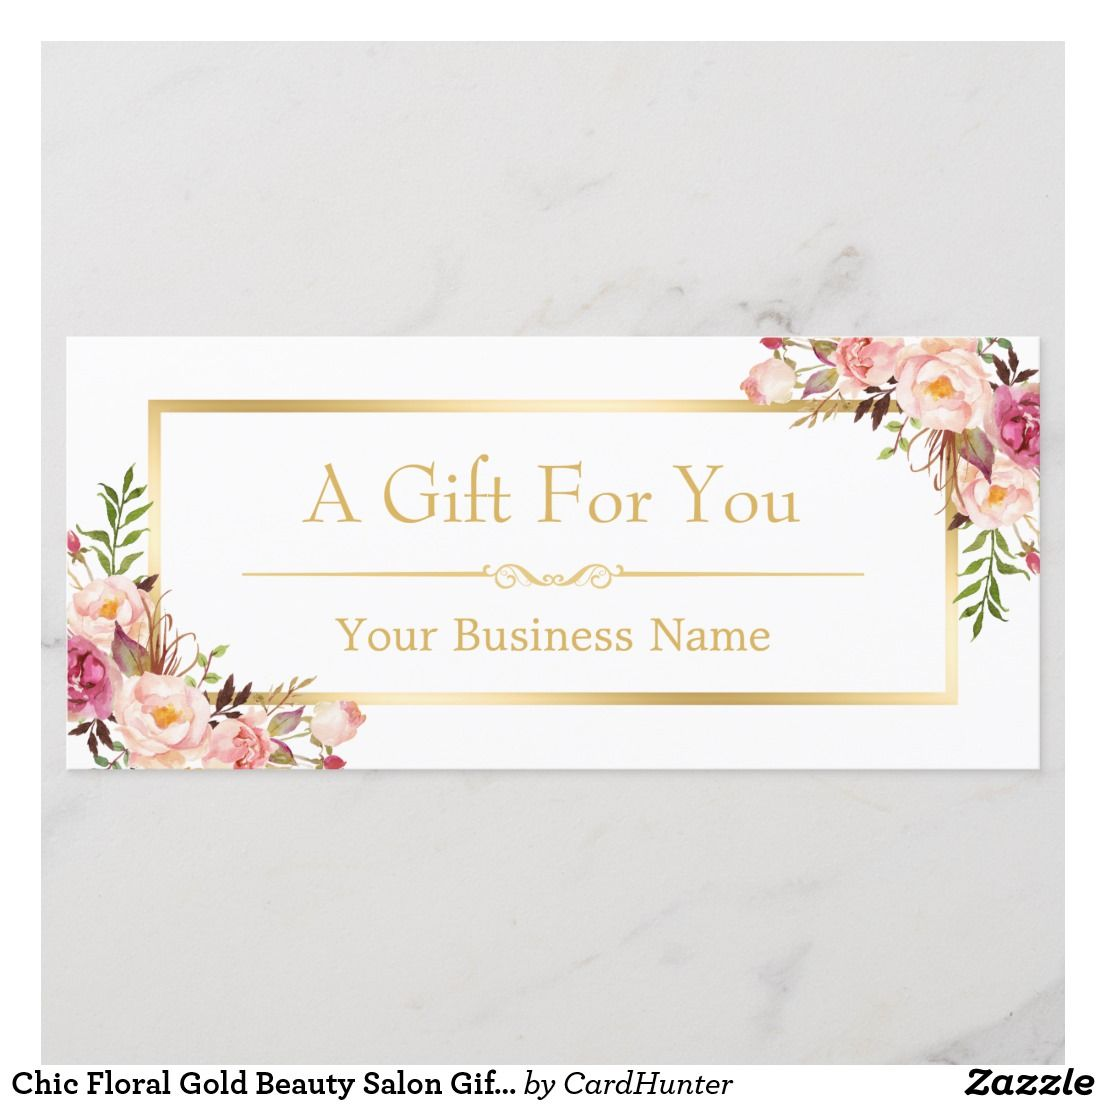 Chic Floral Gold Beauty Salon Gift Certificate  Zazzle.com